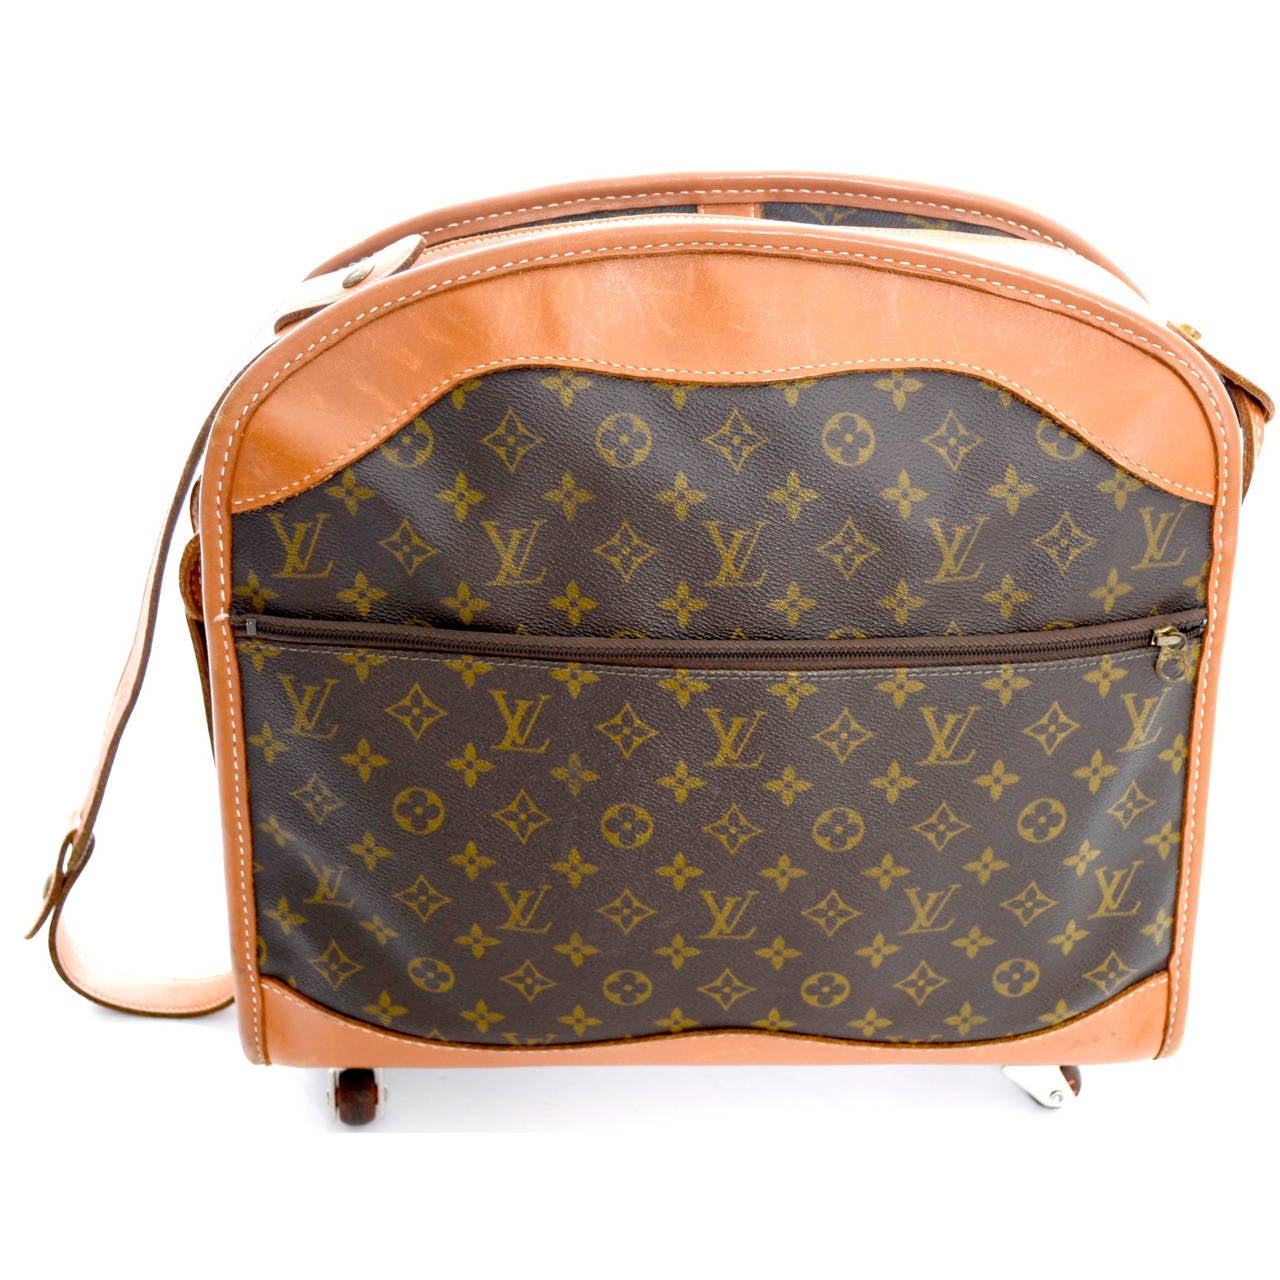 authentic vintage louis vuitton rolling monogram canvas weekender bag luggage at 1stdibs. Black Bedroom Furniture Sets. Home Design Ideas